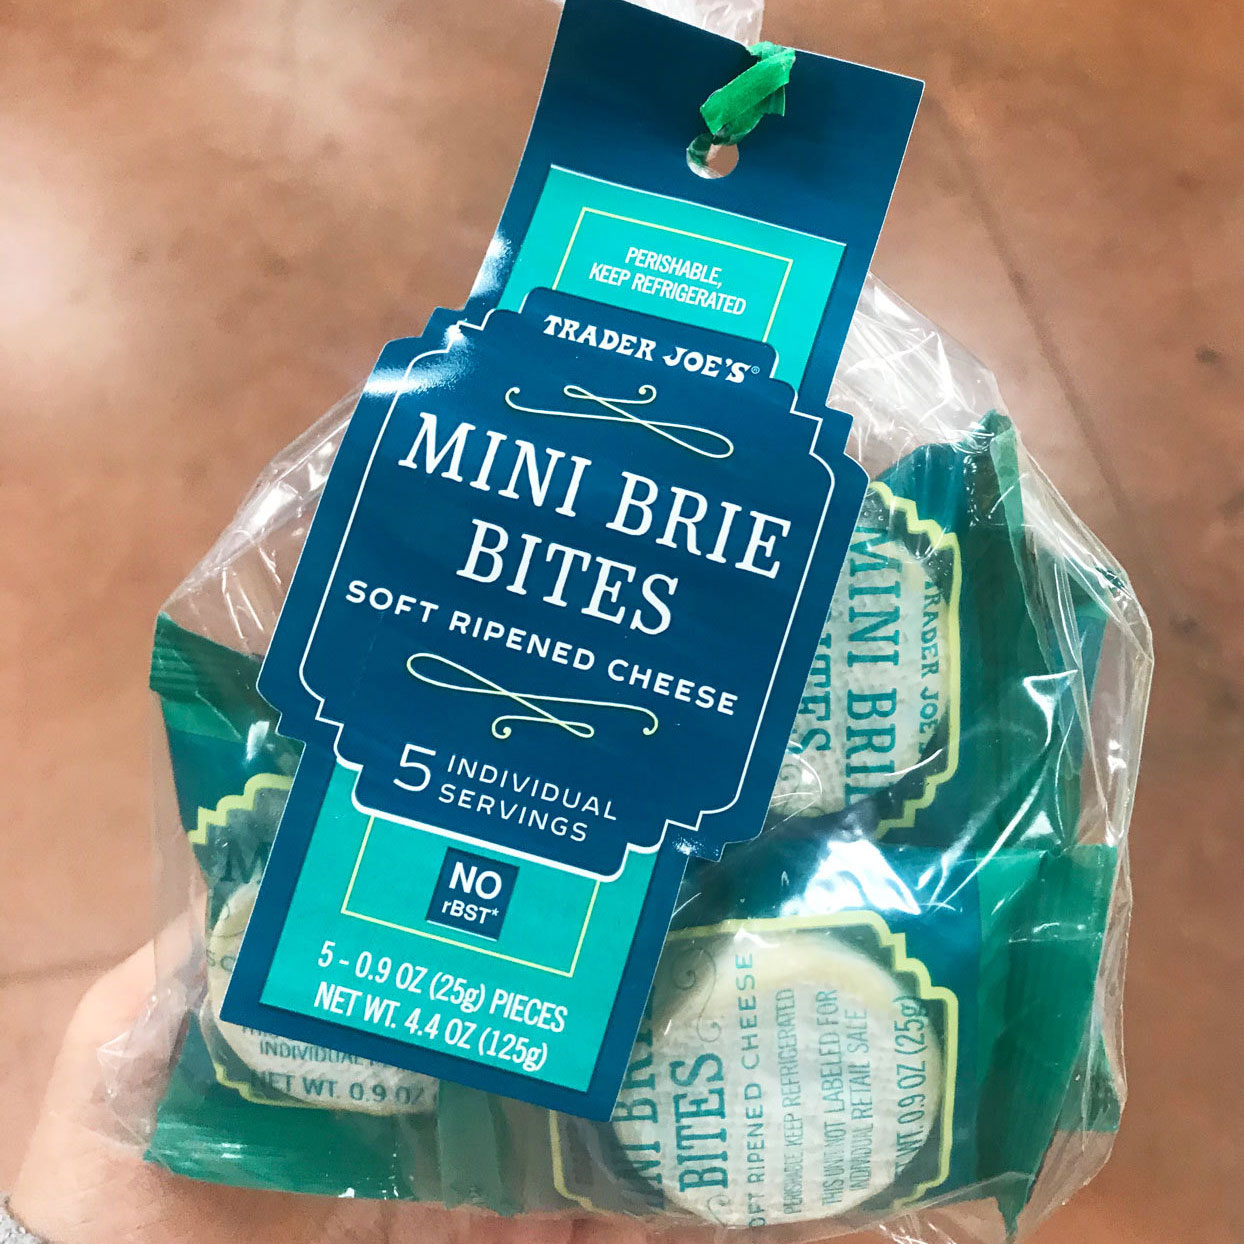 Trader Joe's Mini Brie Bites Are Going to Be Your New Favorite Snack